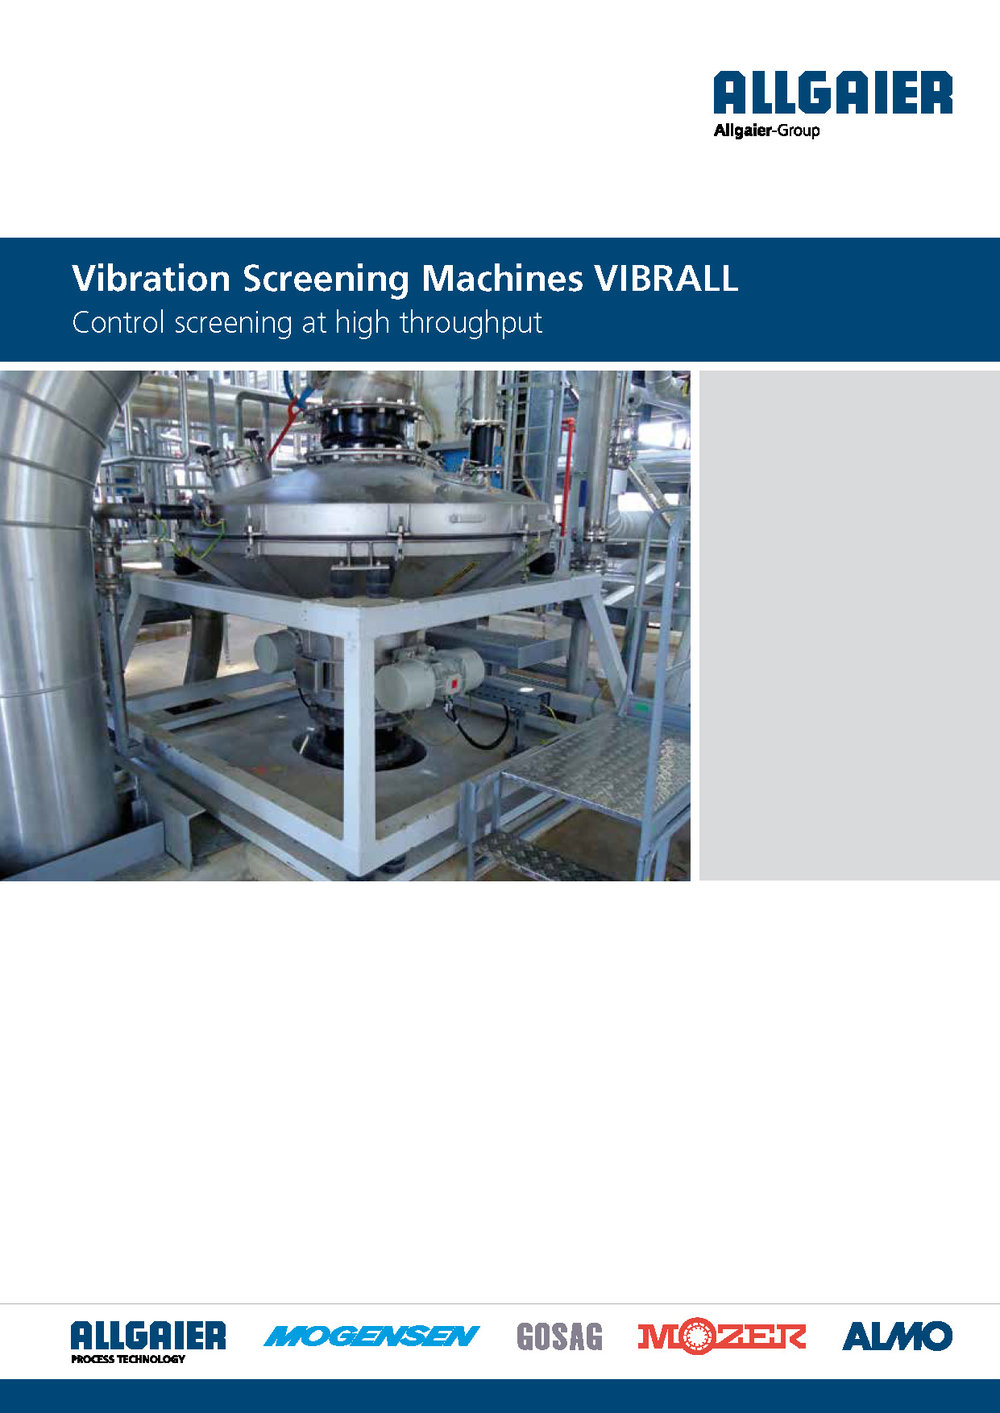 Vibration Screening Machines VIBRALL